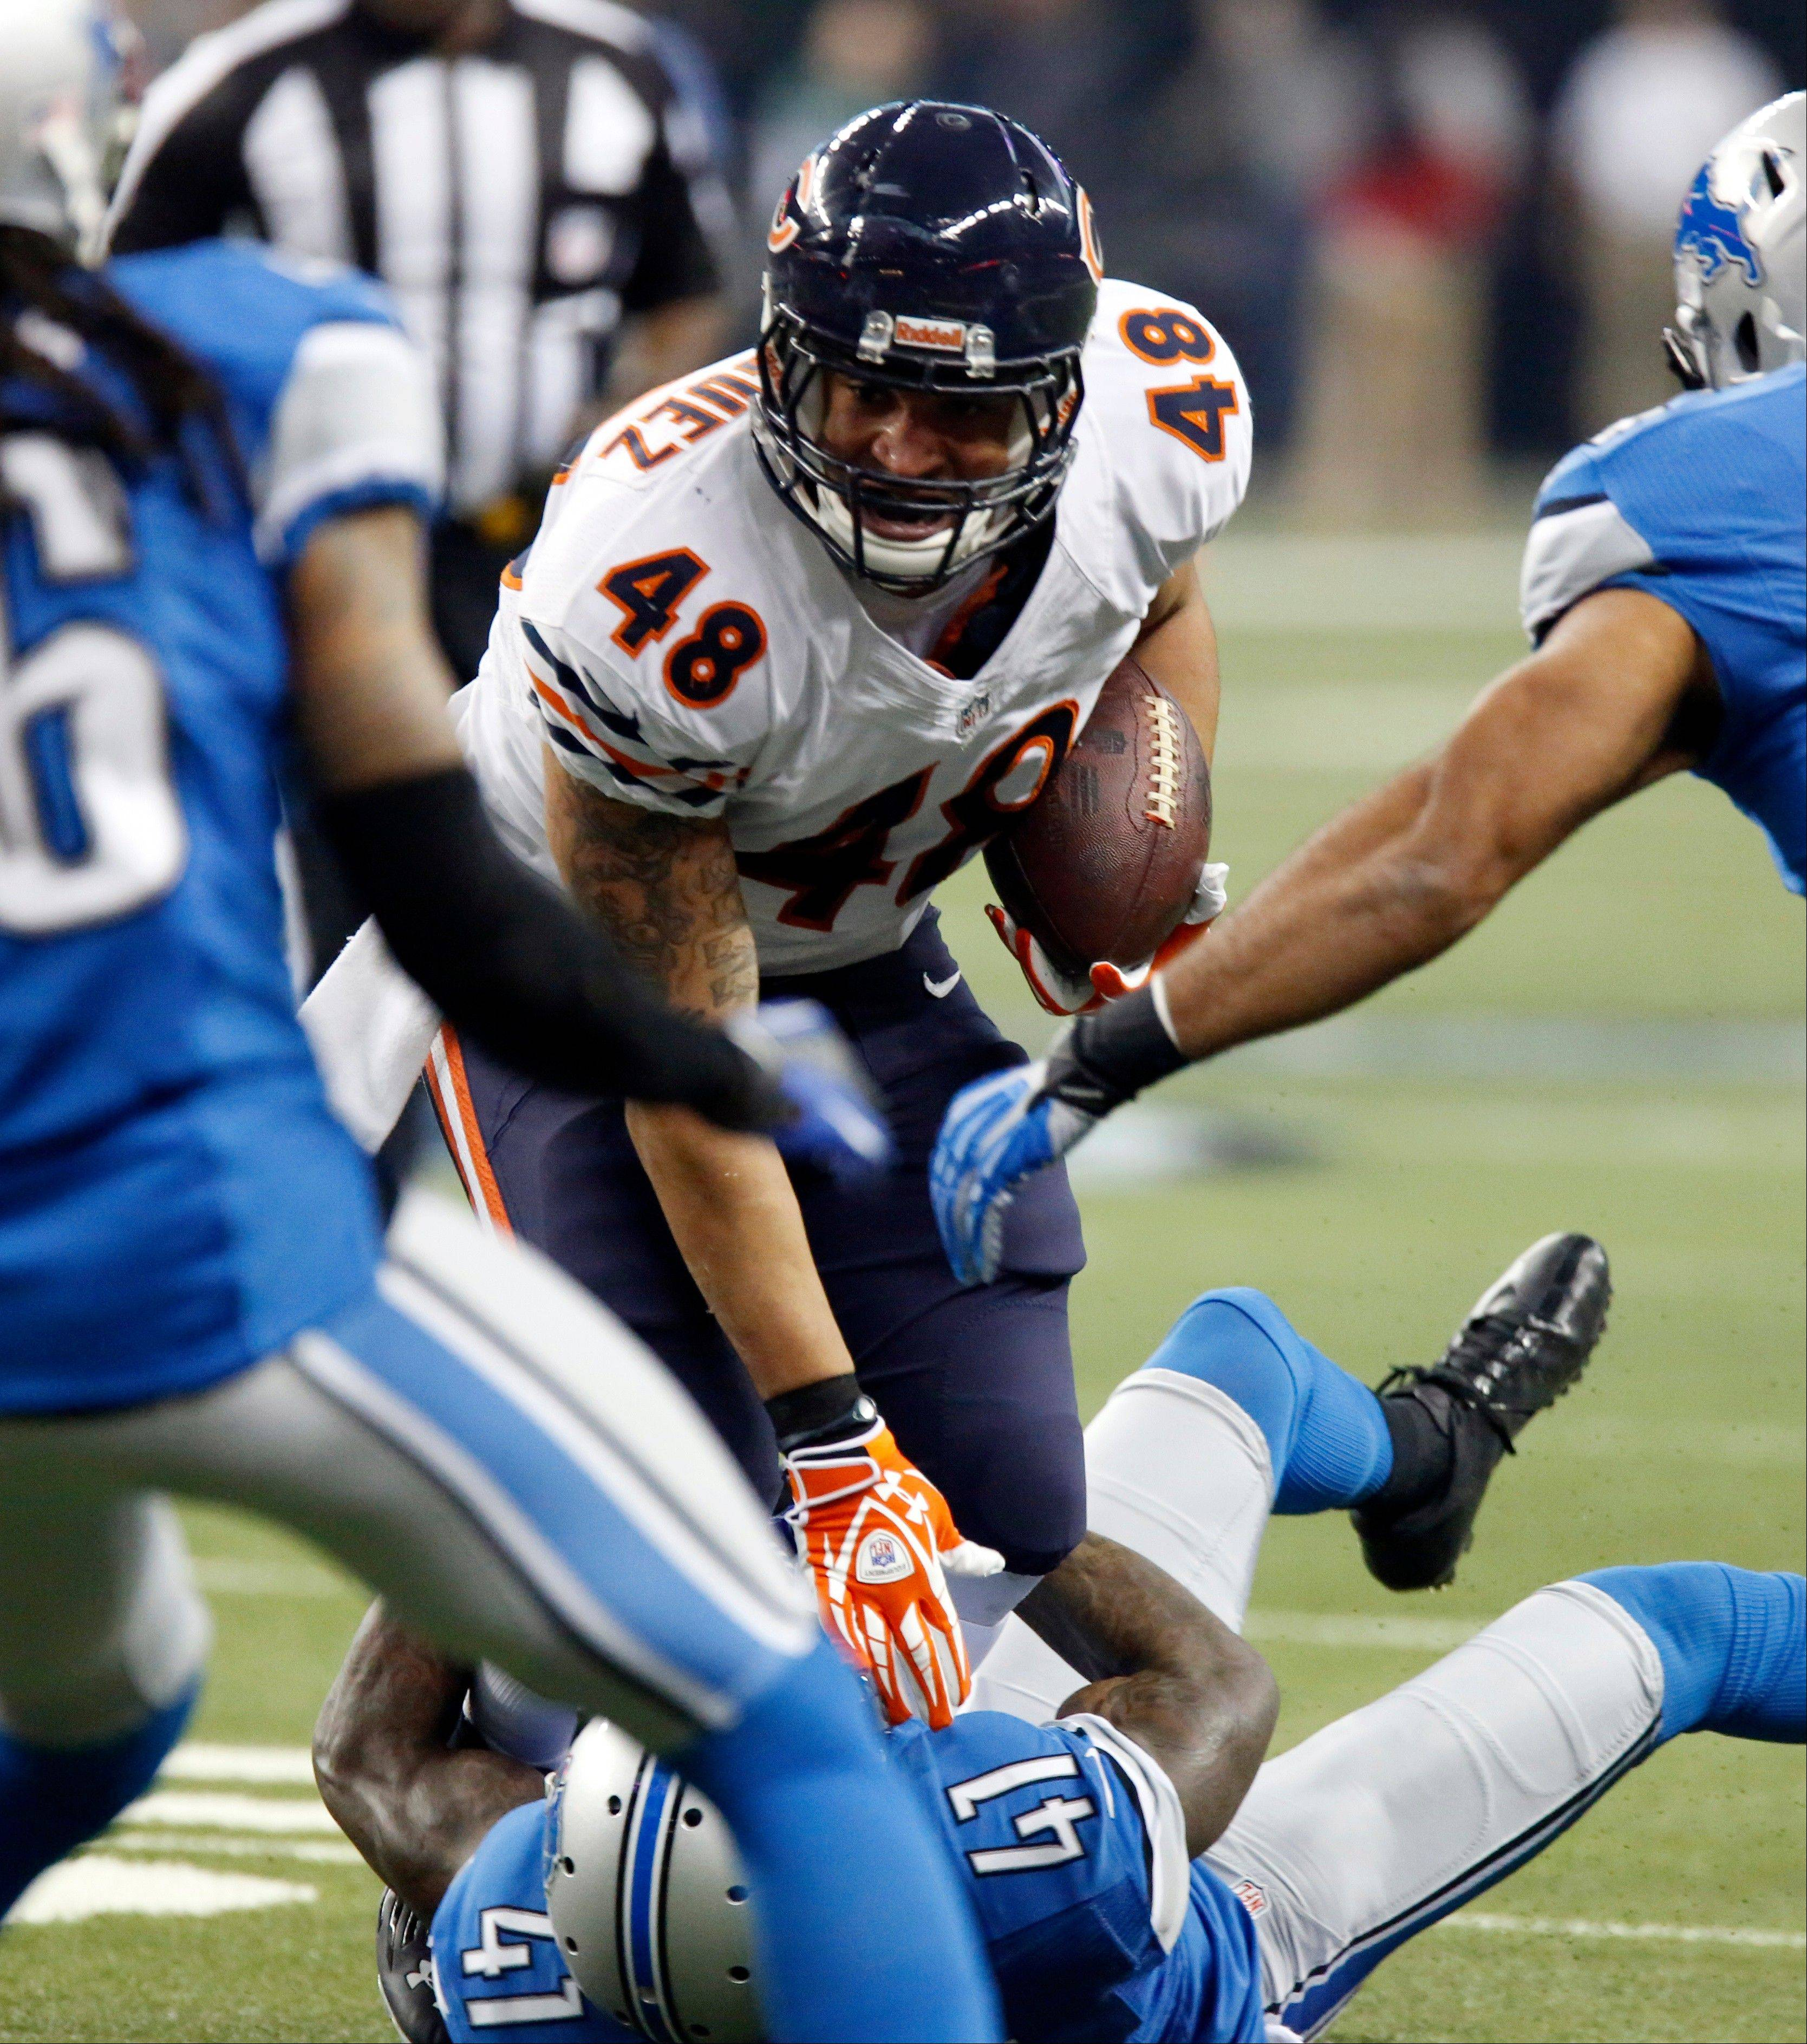 Chicago Bears fullback Evan Rodriguez (48) is stopped by Detroit Lions cornerback Ron Bartell (41) during the first quarter.